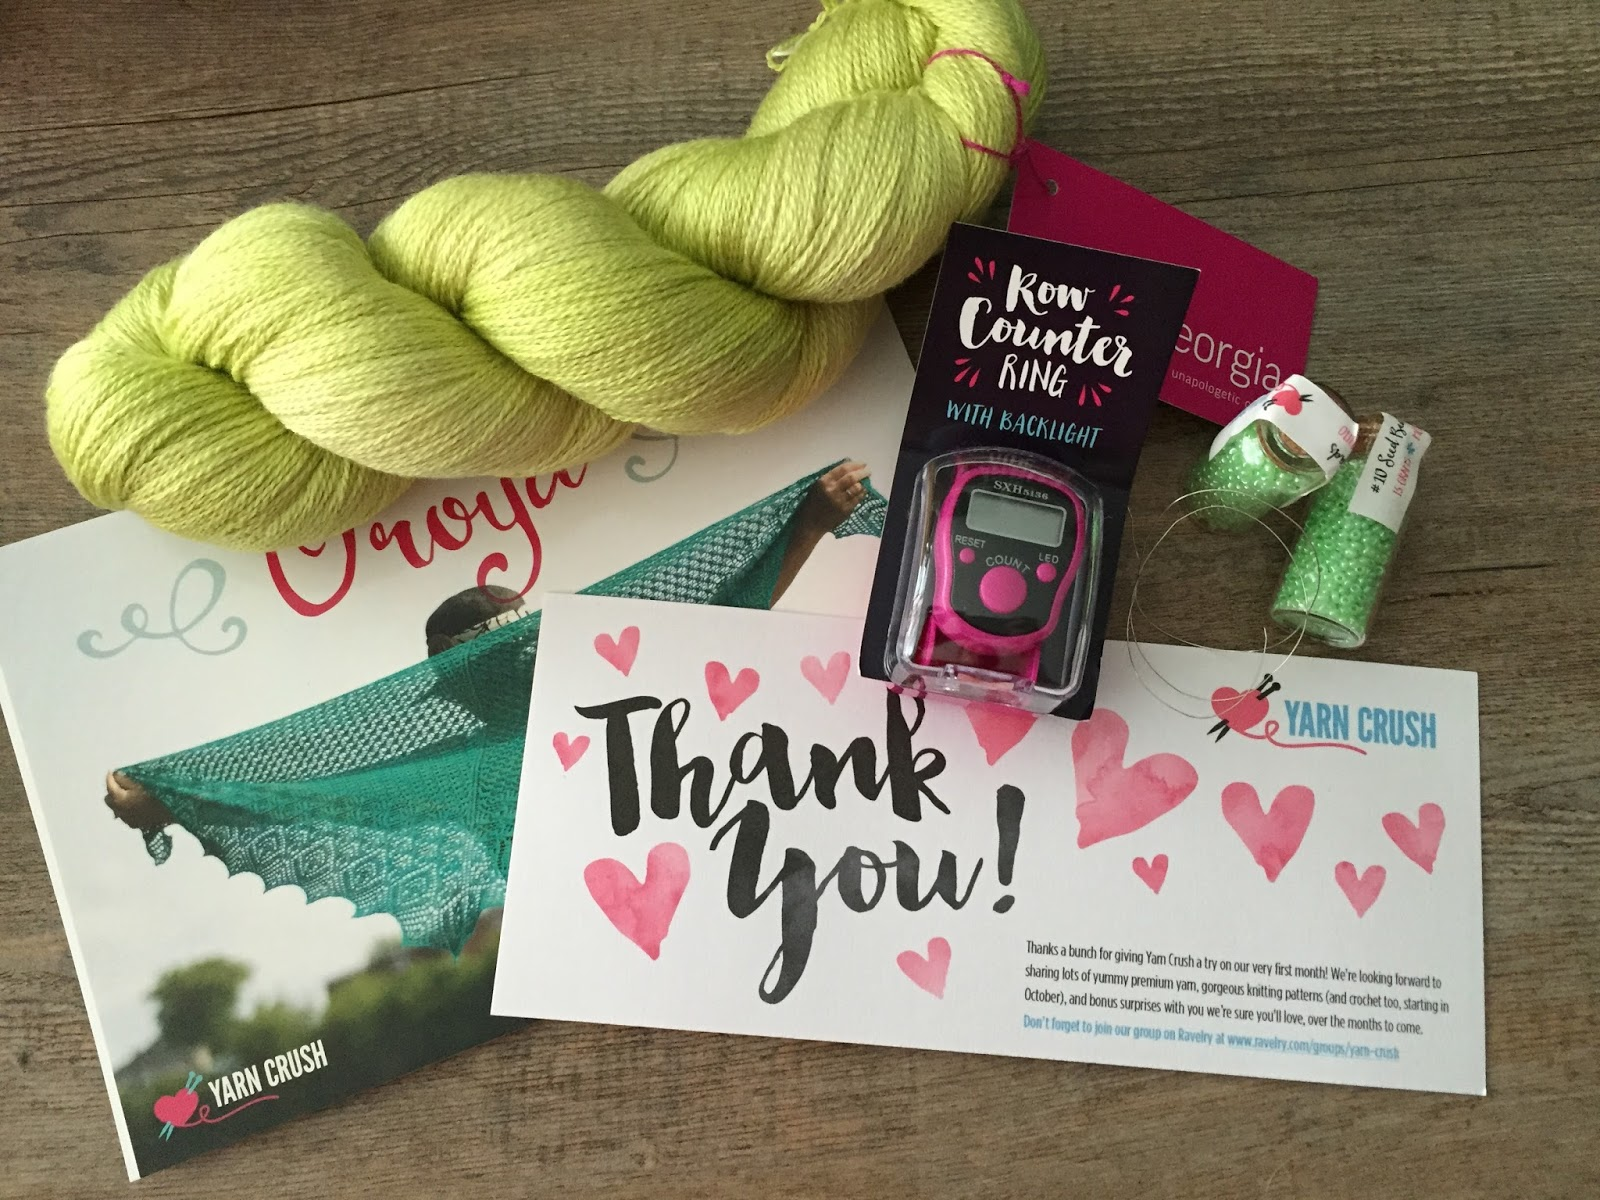 Yarn Crush Review - August 2015 - Canadian Knitting Subscription Box + PROMO